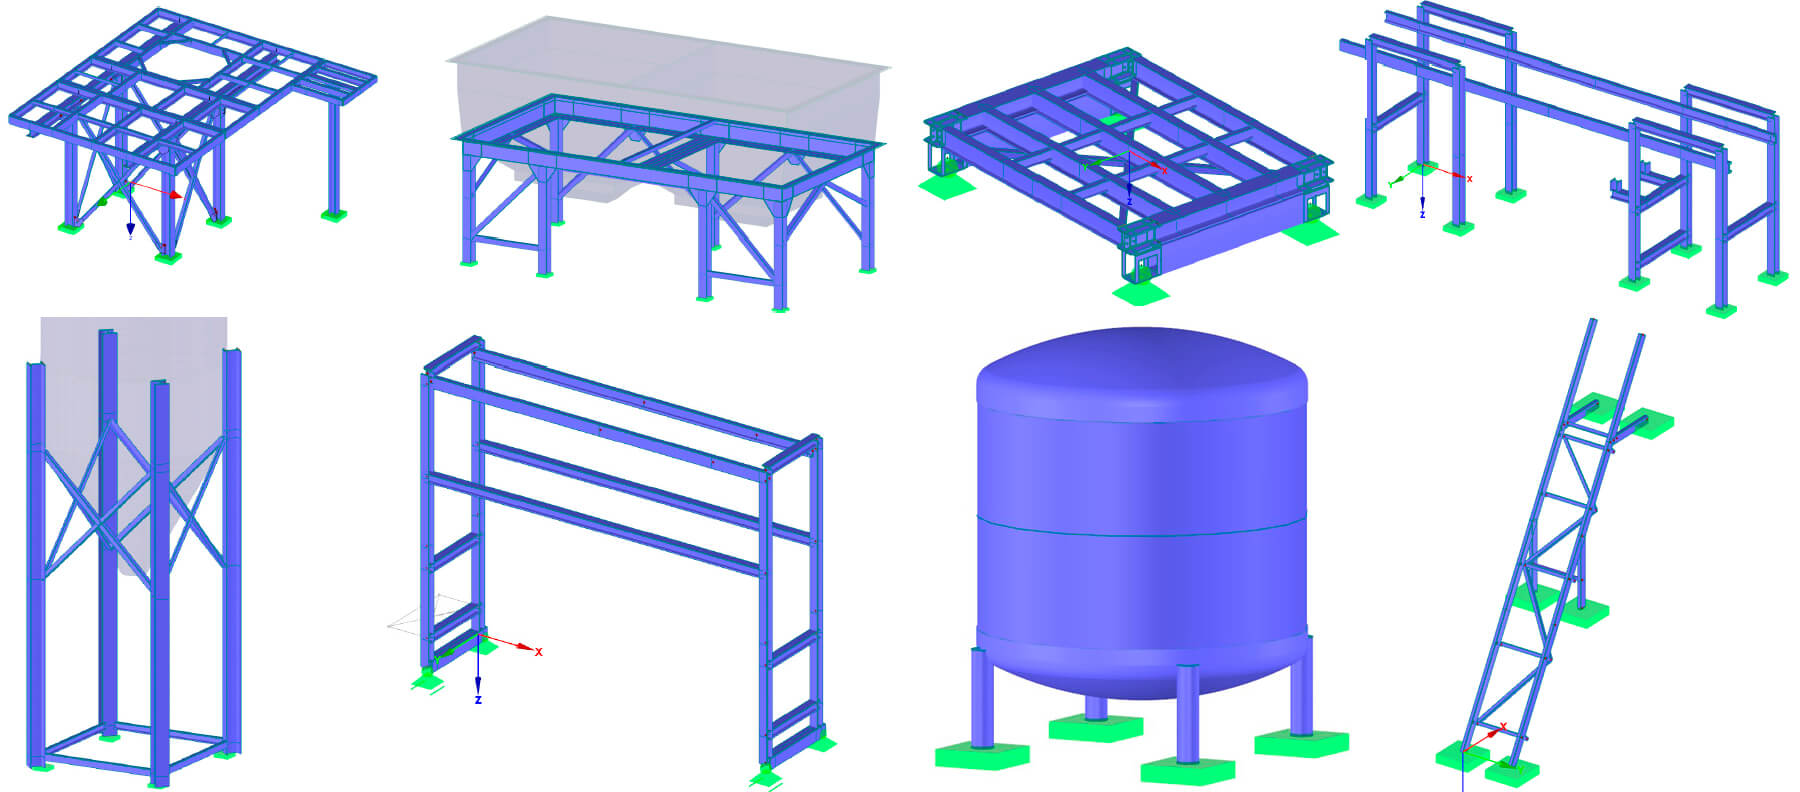 Supporting Structures for Oil Refinery